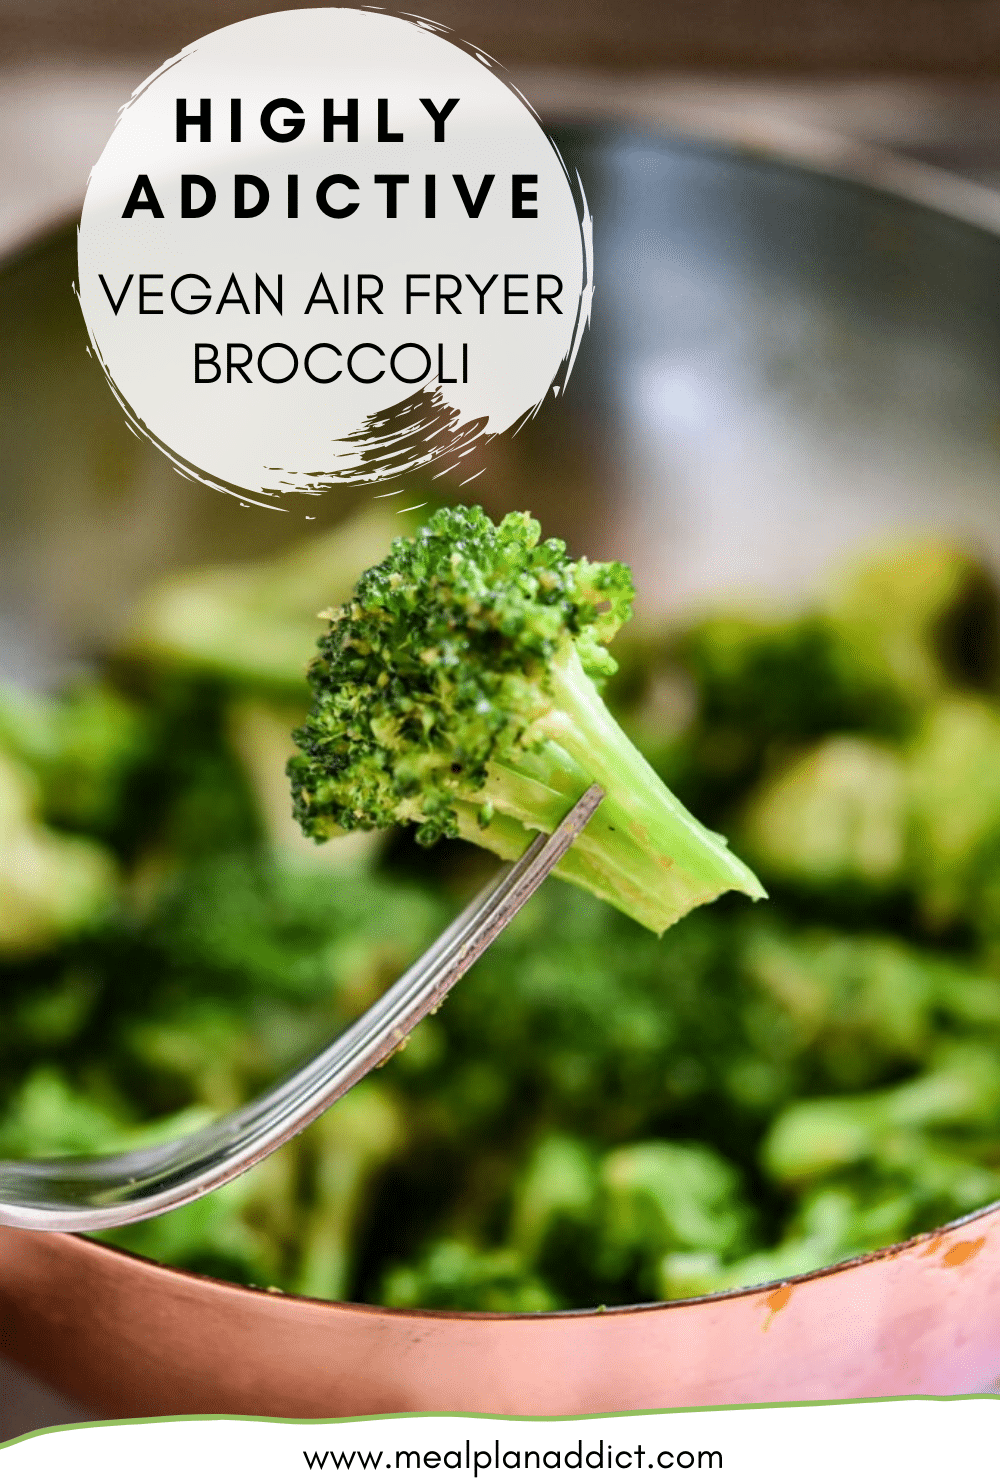 Highly Addictive Vegan Air Fryer Broccoli